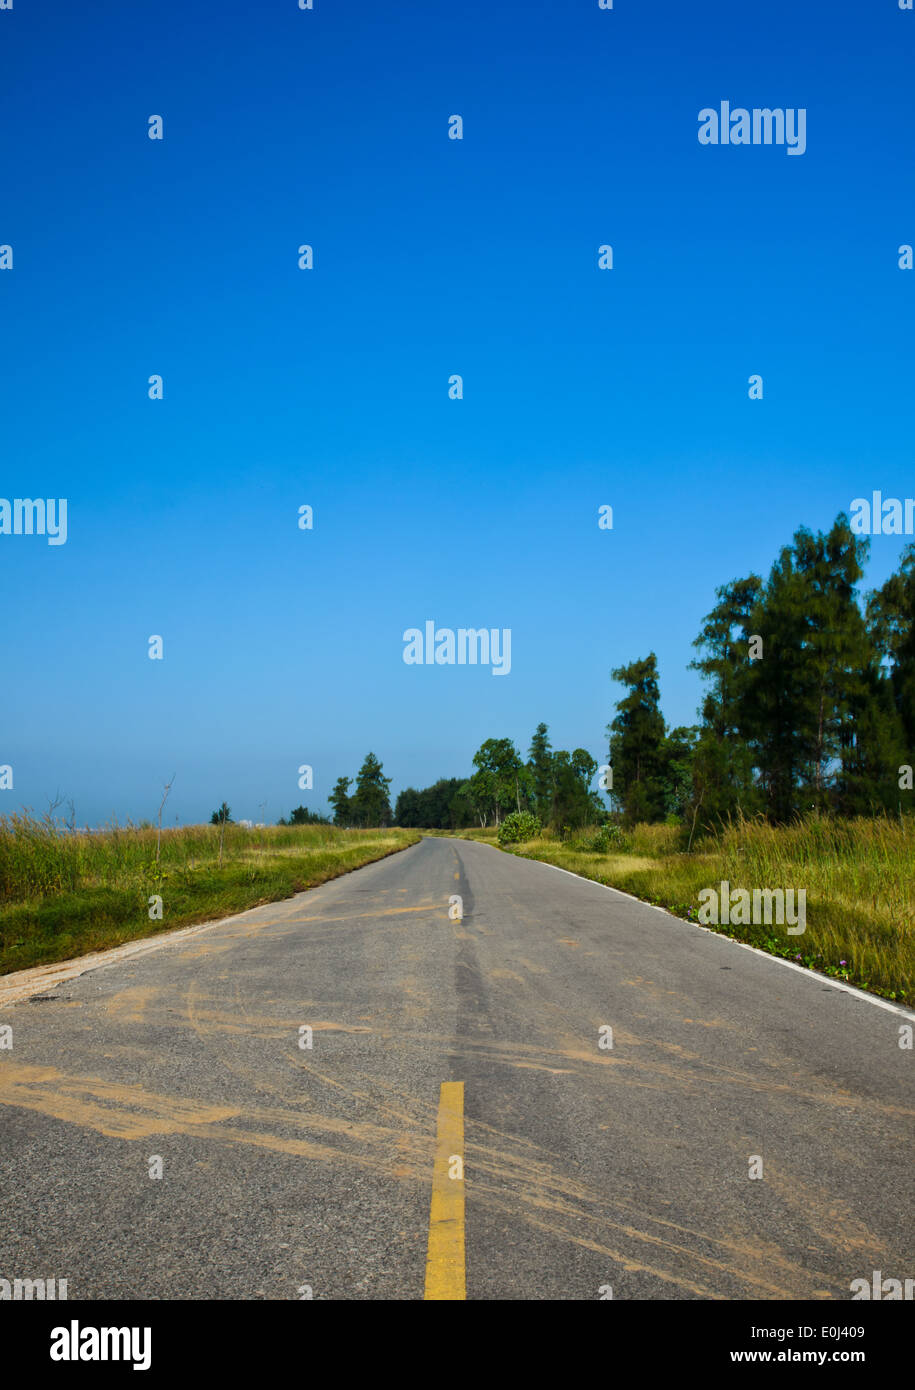 Long road stretching out into the distance under a dramatic blue sky Stock Photo